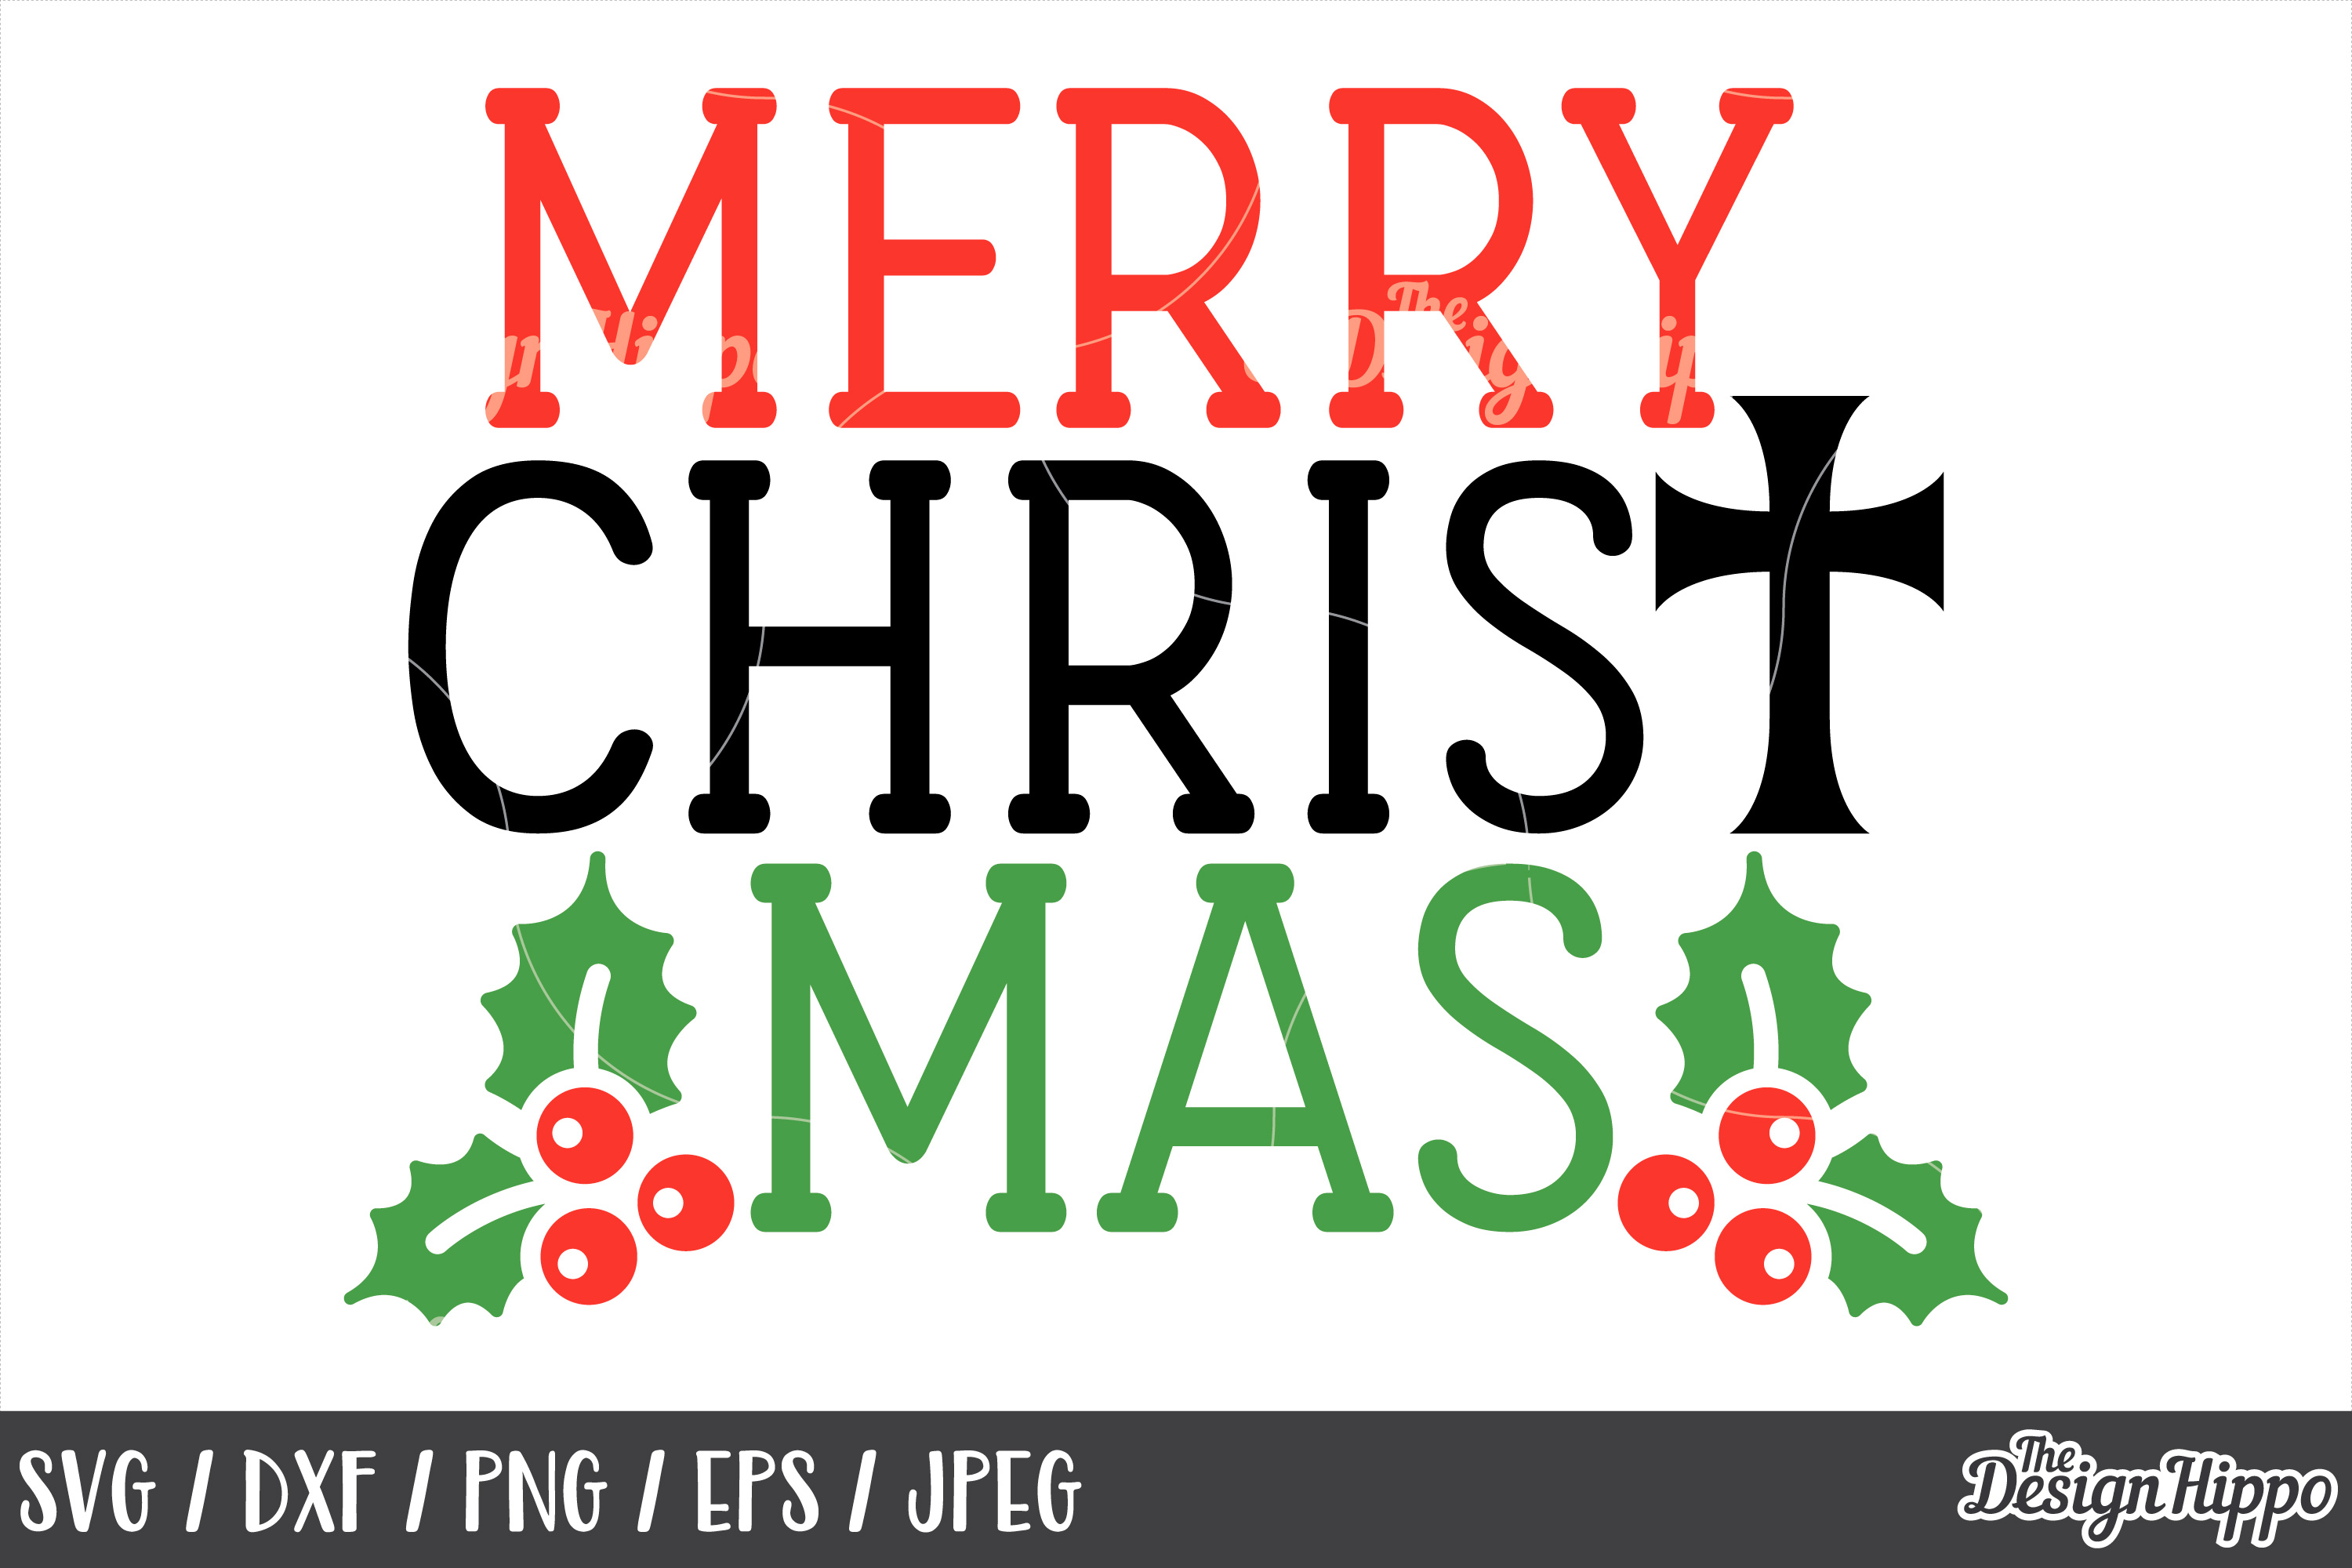 Merry Christmas SVG Bundle, Christmas SVG, PNG, DXF Cut File example image 5